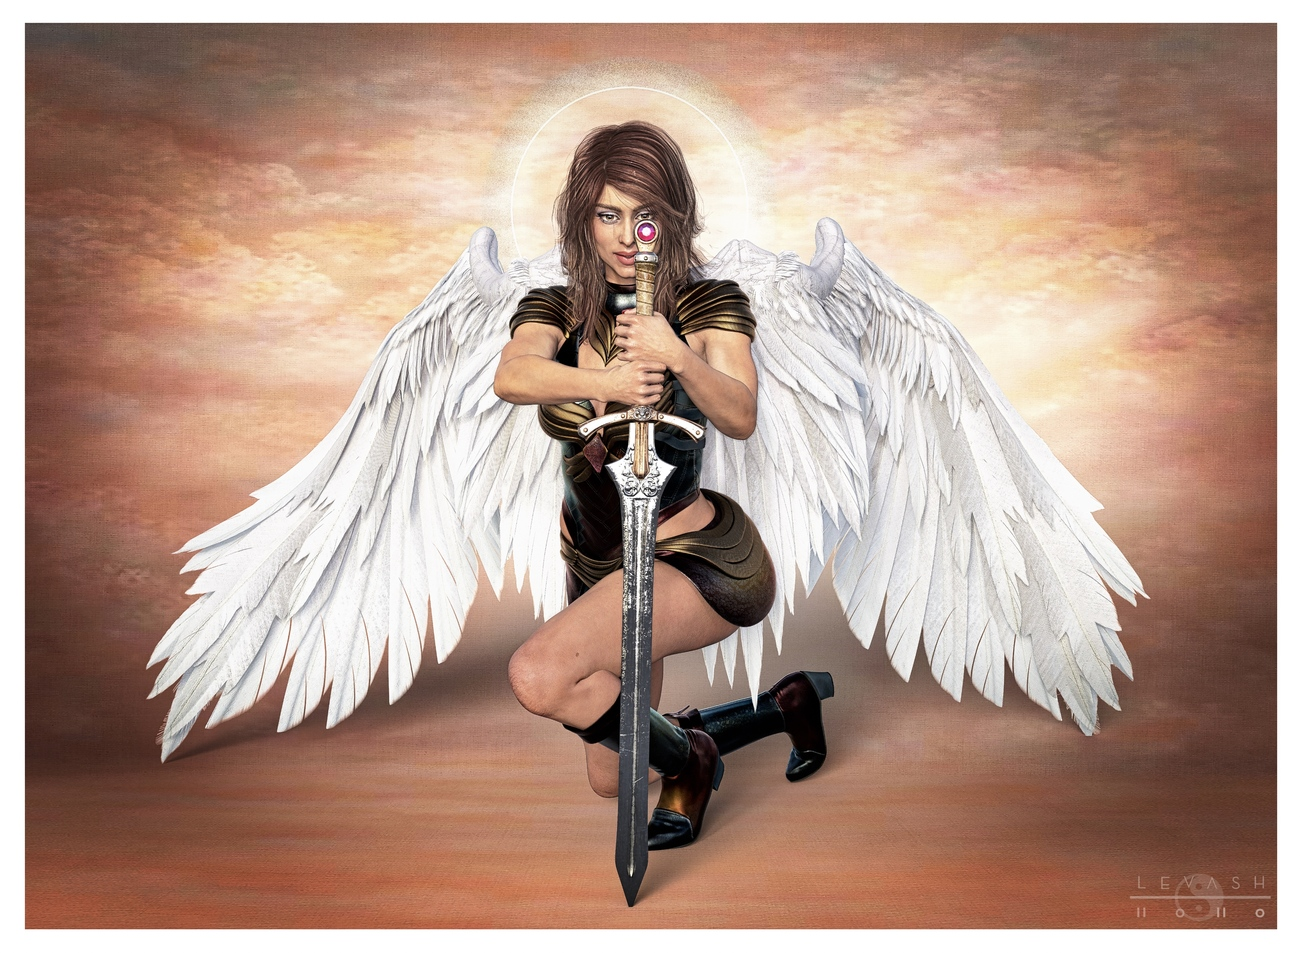 THE REDEMPTION PROJECT ANGEL